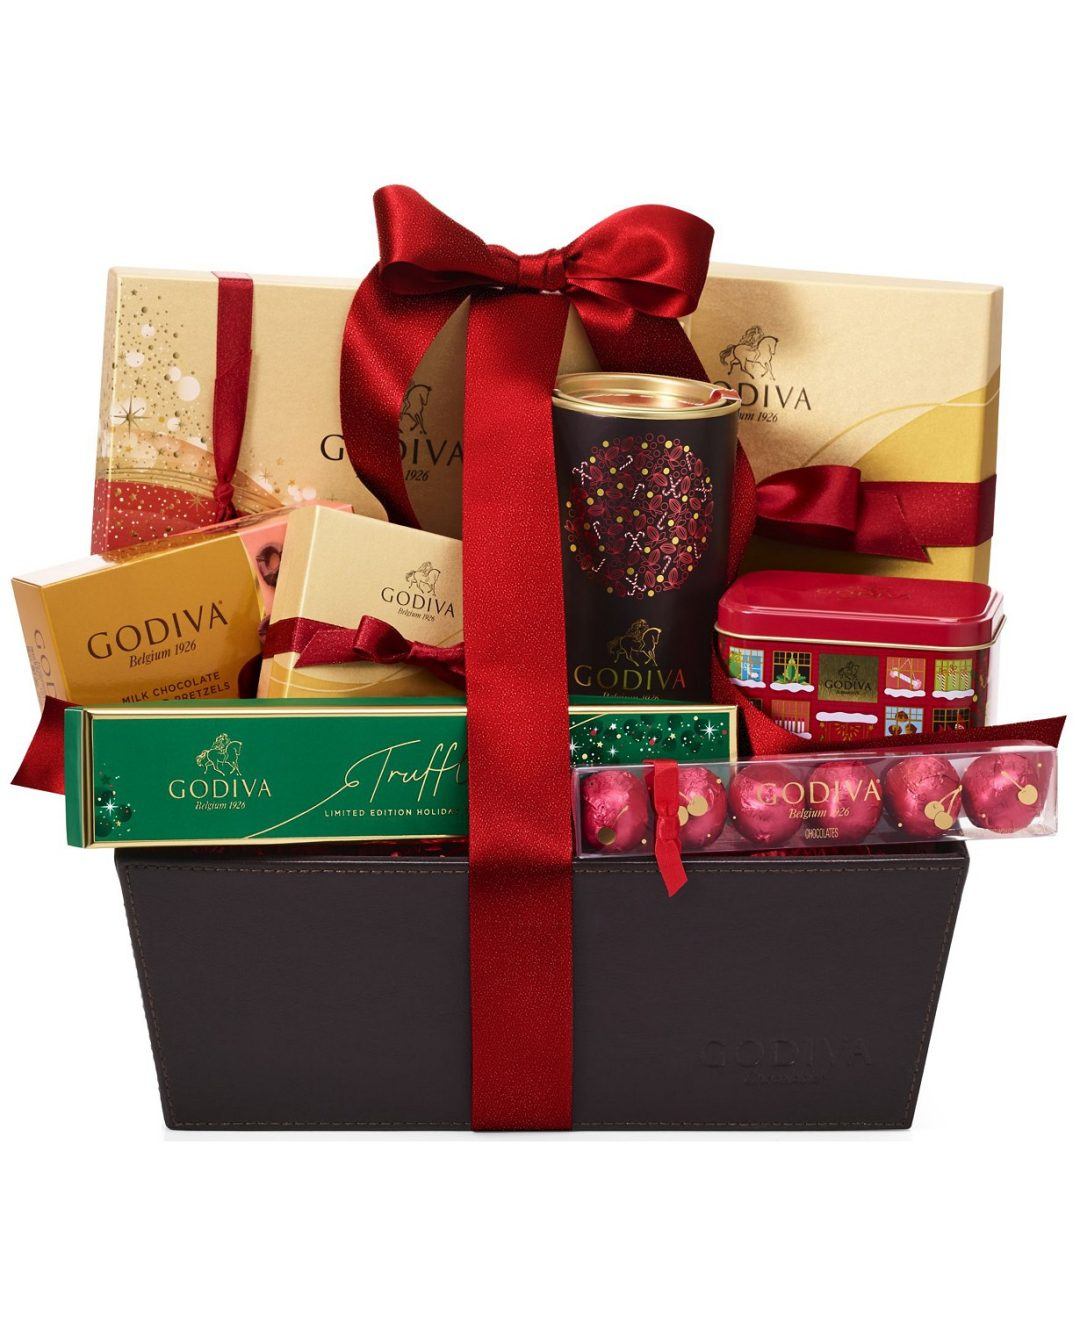 The best expensive gifts for boss: luxury gift baskets